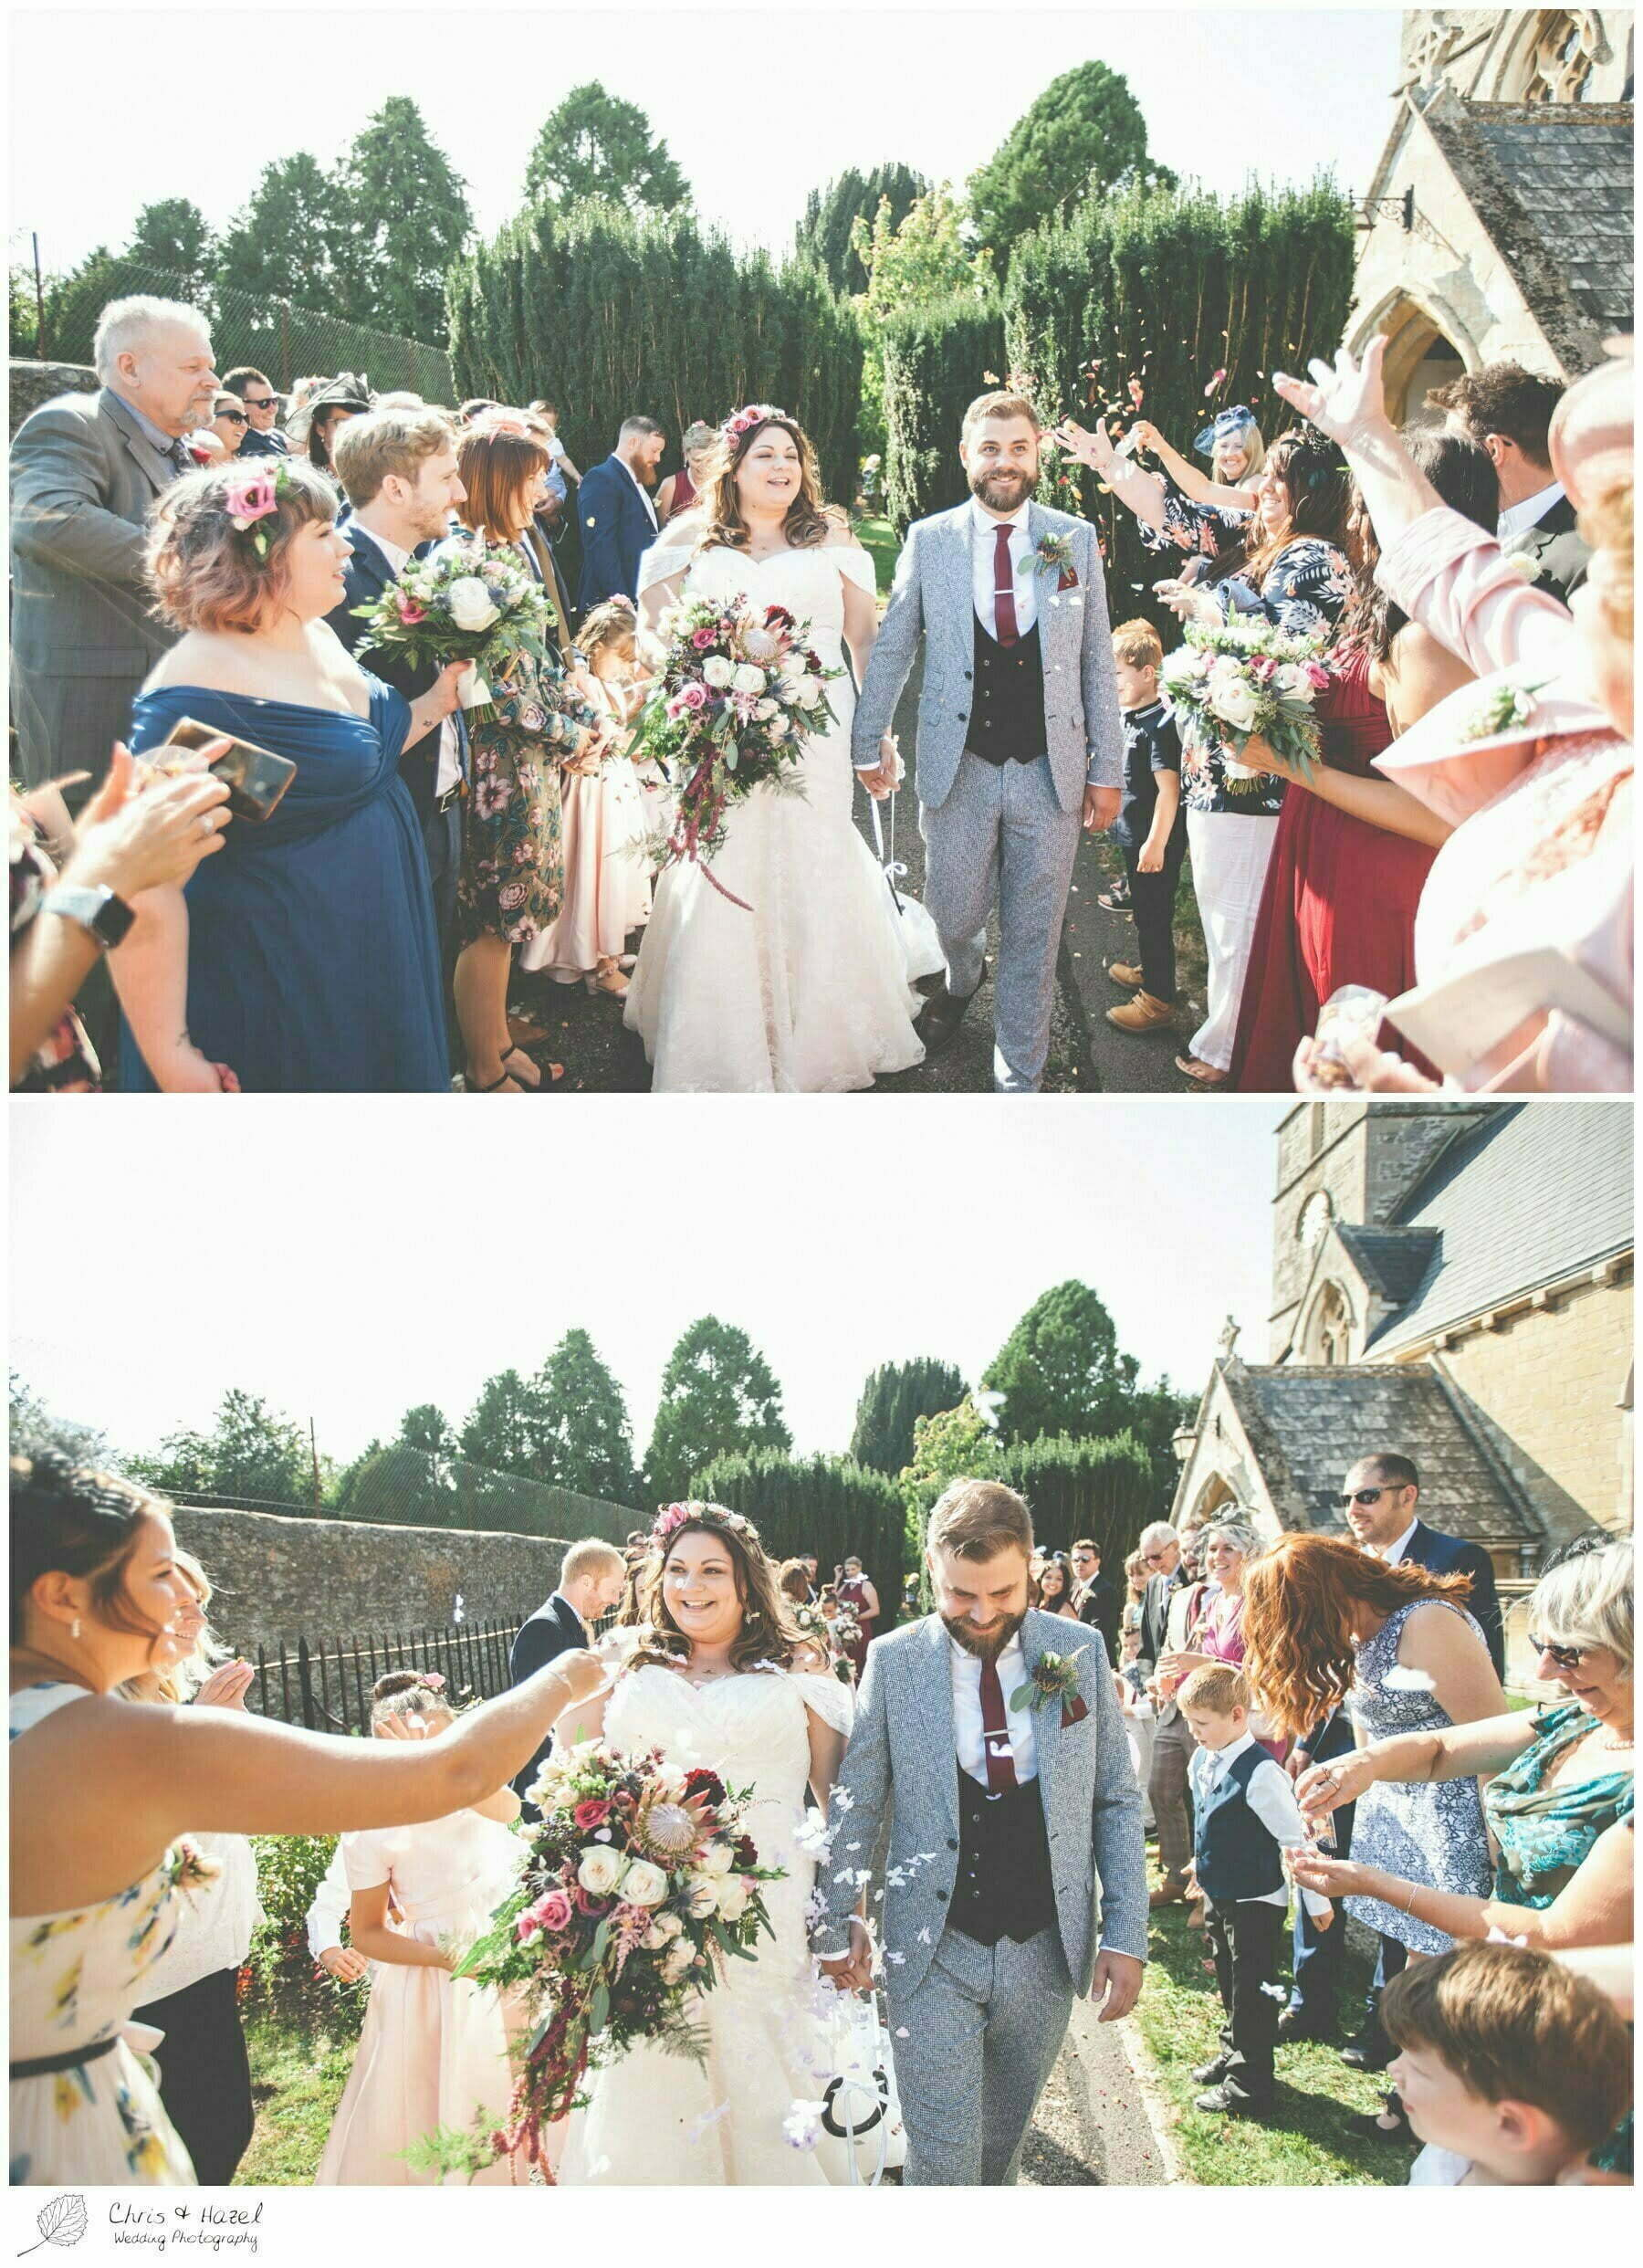 Bride and groom wedding guests confetti outside the church, Hilperton Church, St Michael & All Angels' Church, Wedding Photography, Wiltshire Wedding Photographer Trowbridge, Chris and Hazel Wedding Photography